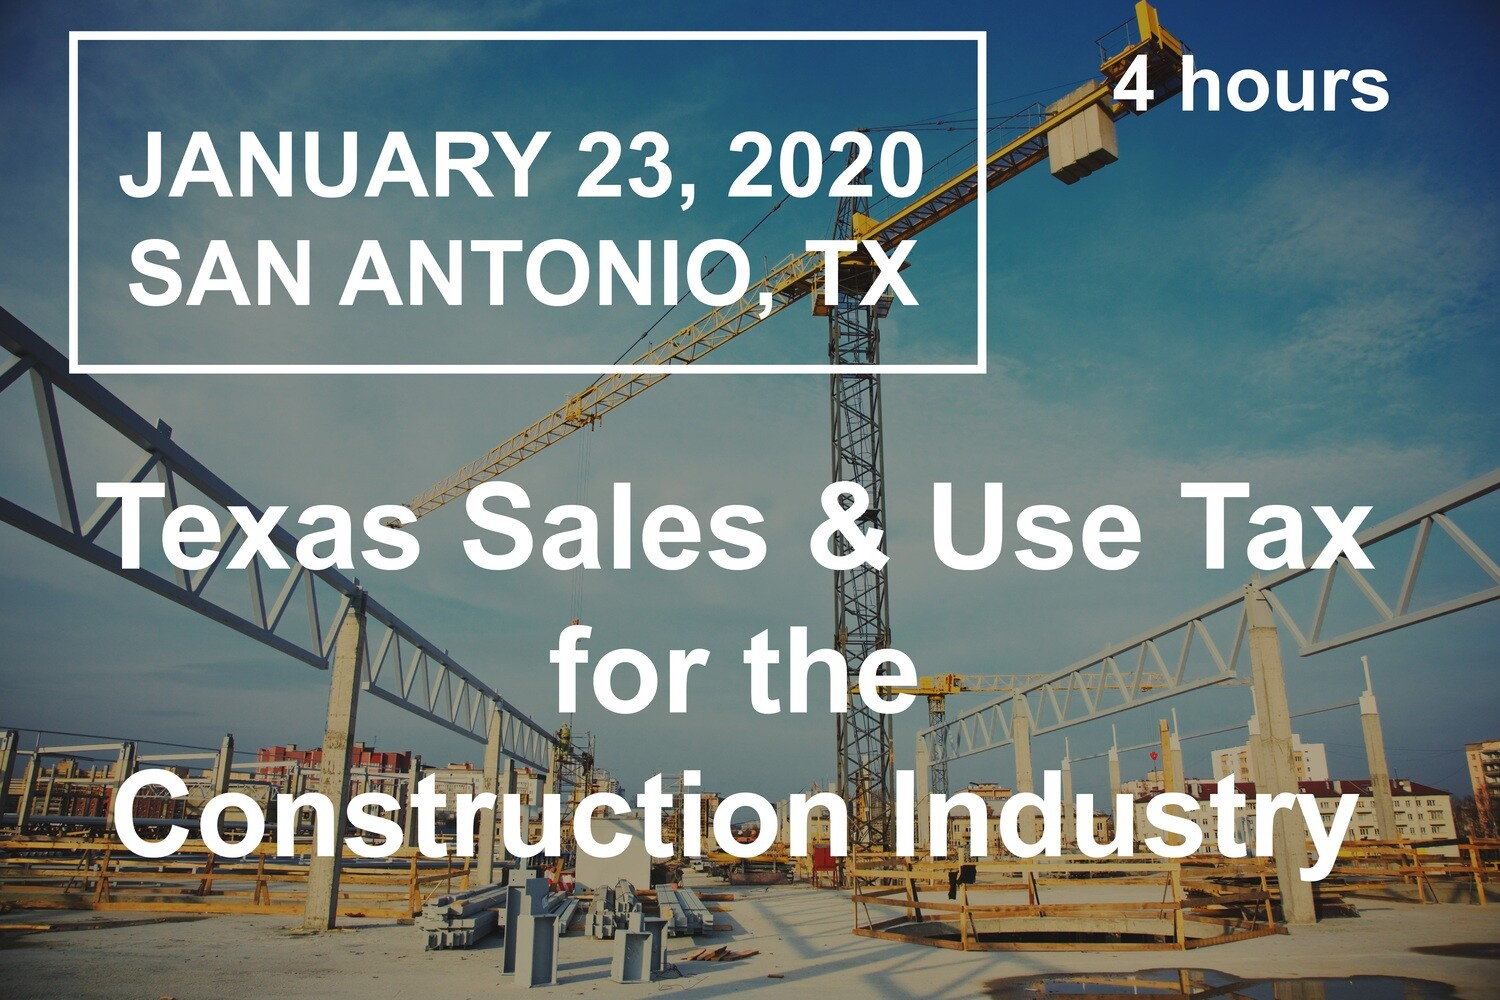 TX Sales & Use Tax for the Construction Industry: January 23, 2020